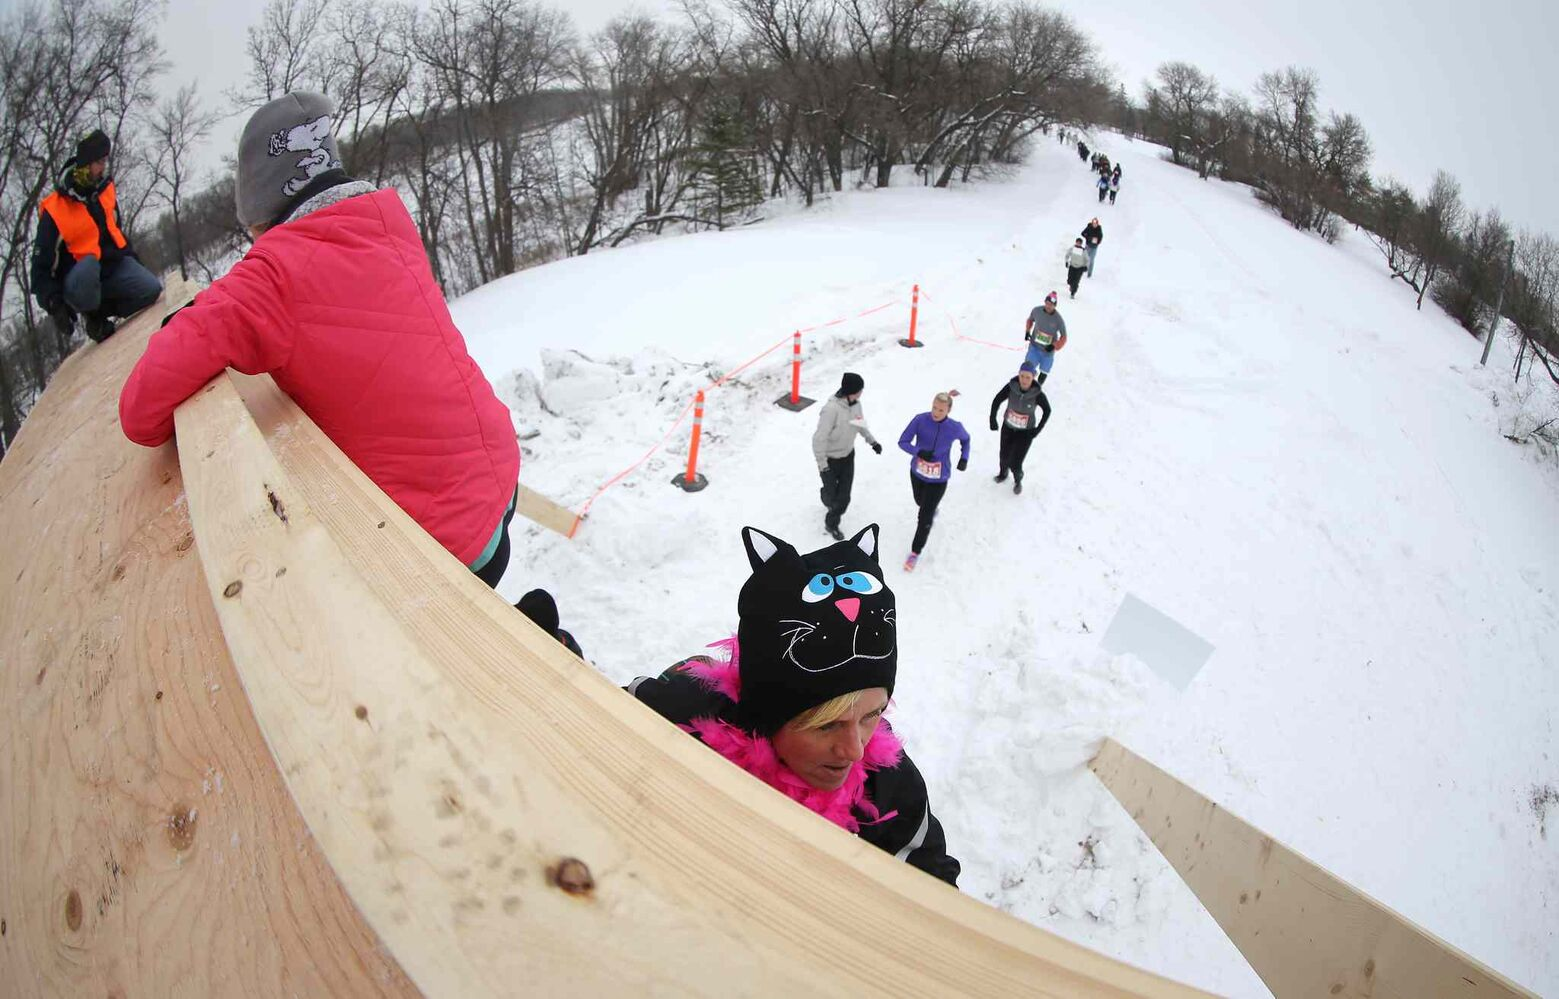 Participants make their way over the Tower of Power obstacle during the Ice Donkey event.